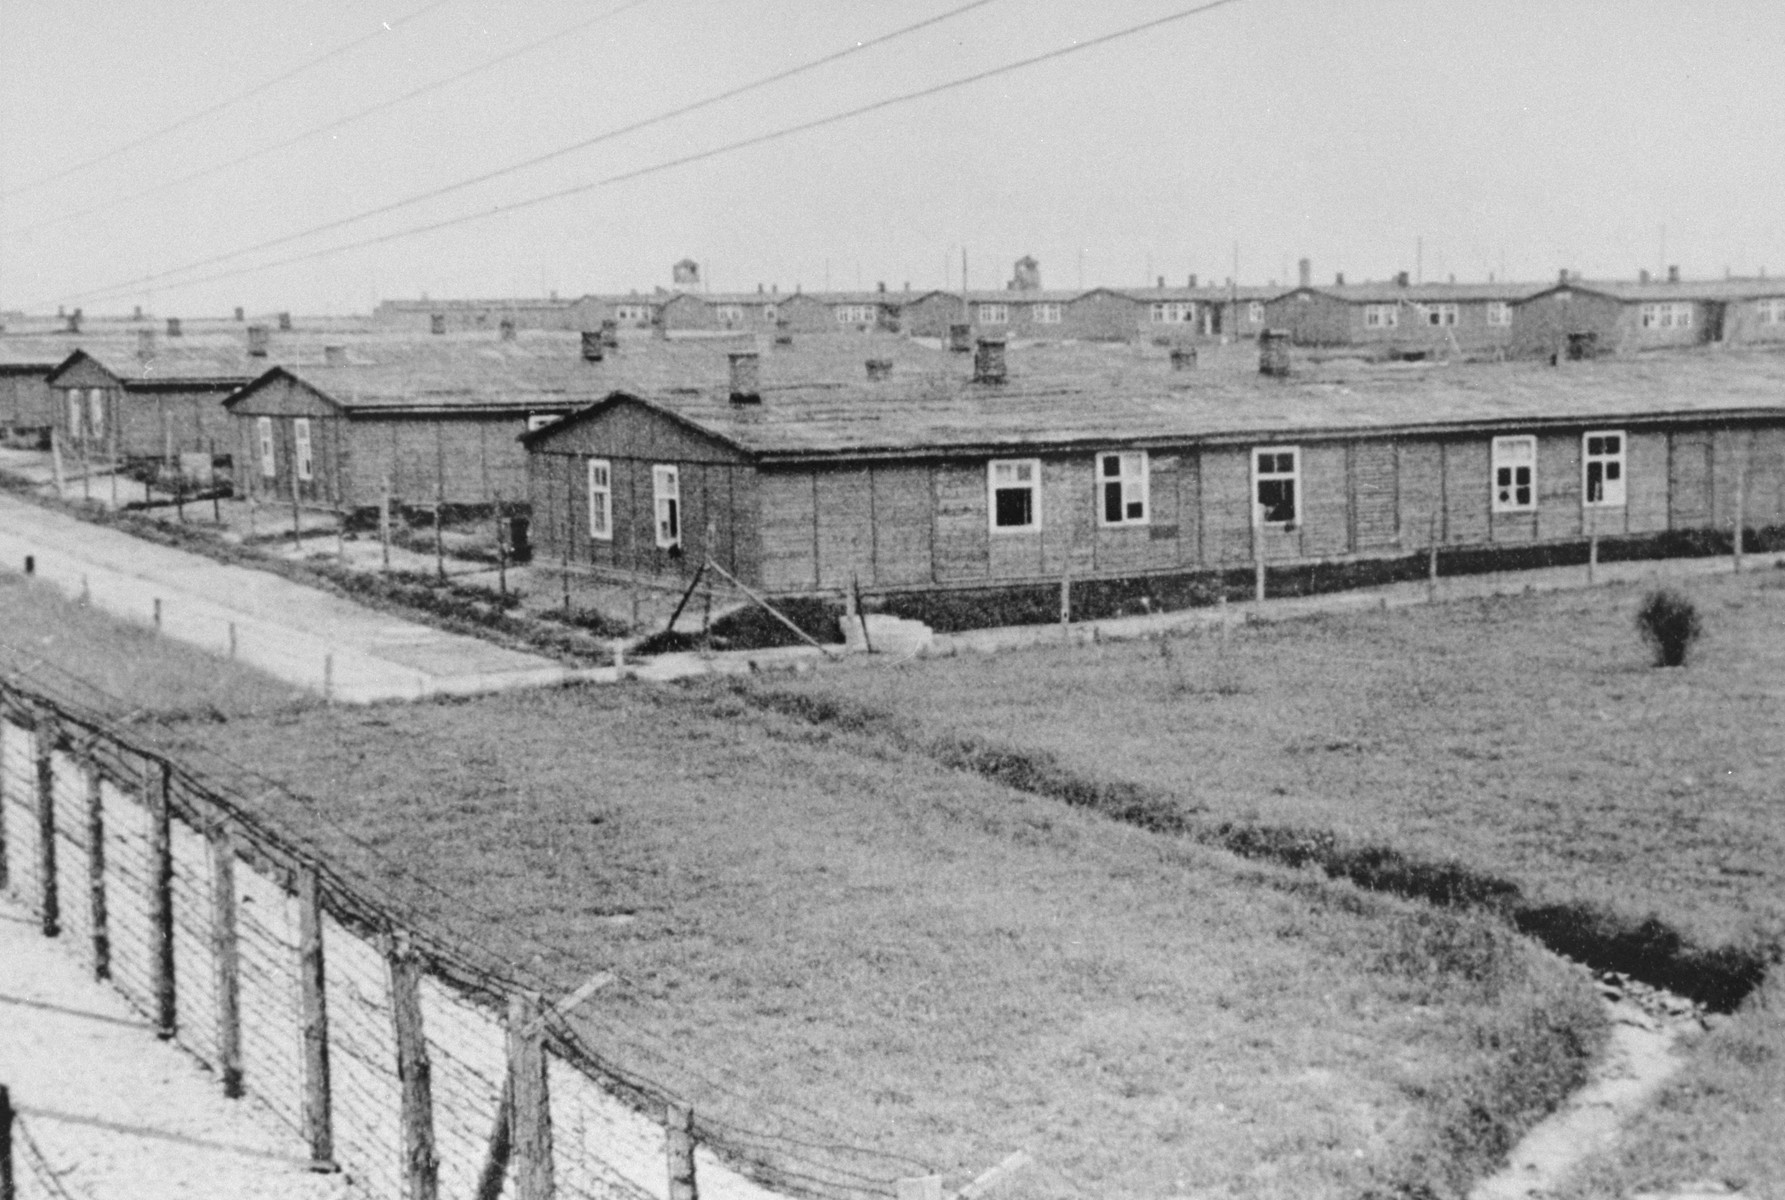 A view of the barracks from a watch tower in Majdanek.